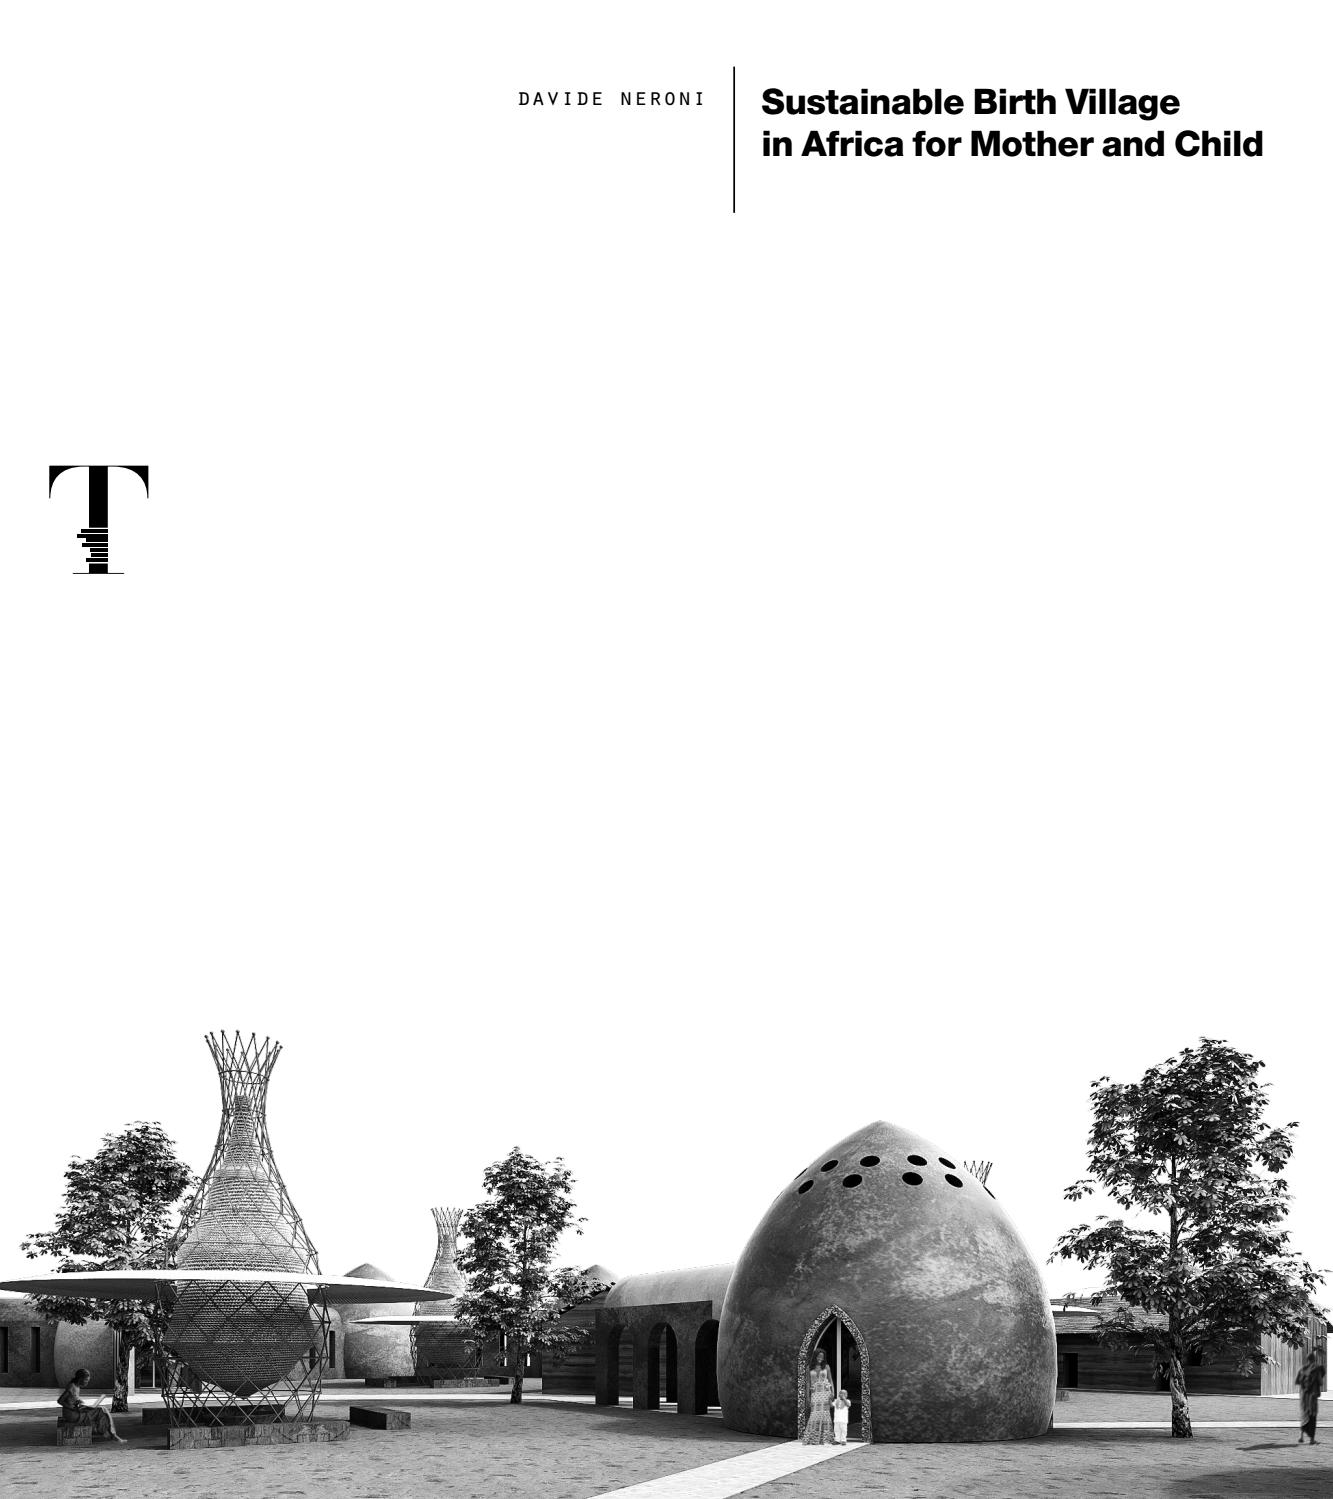 Sustainable Birth Village in Africa for Mother and Child by